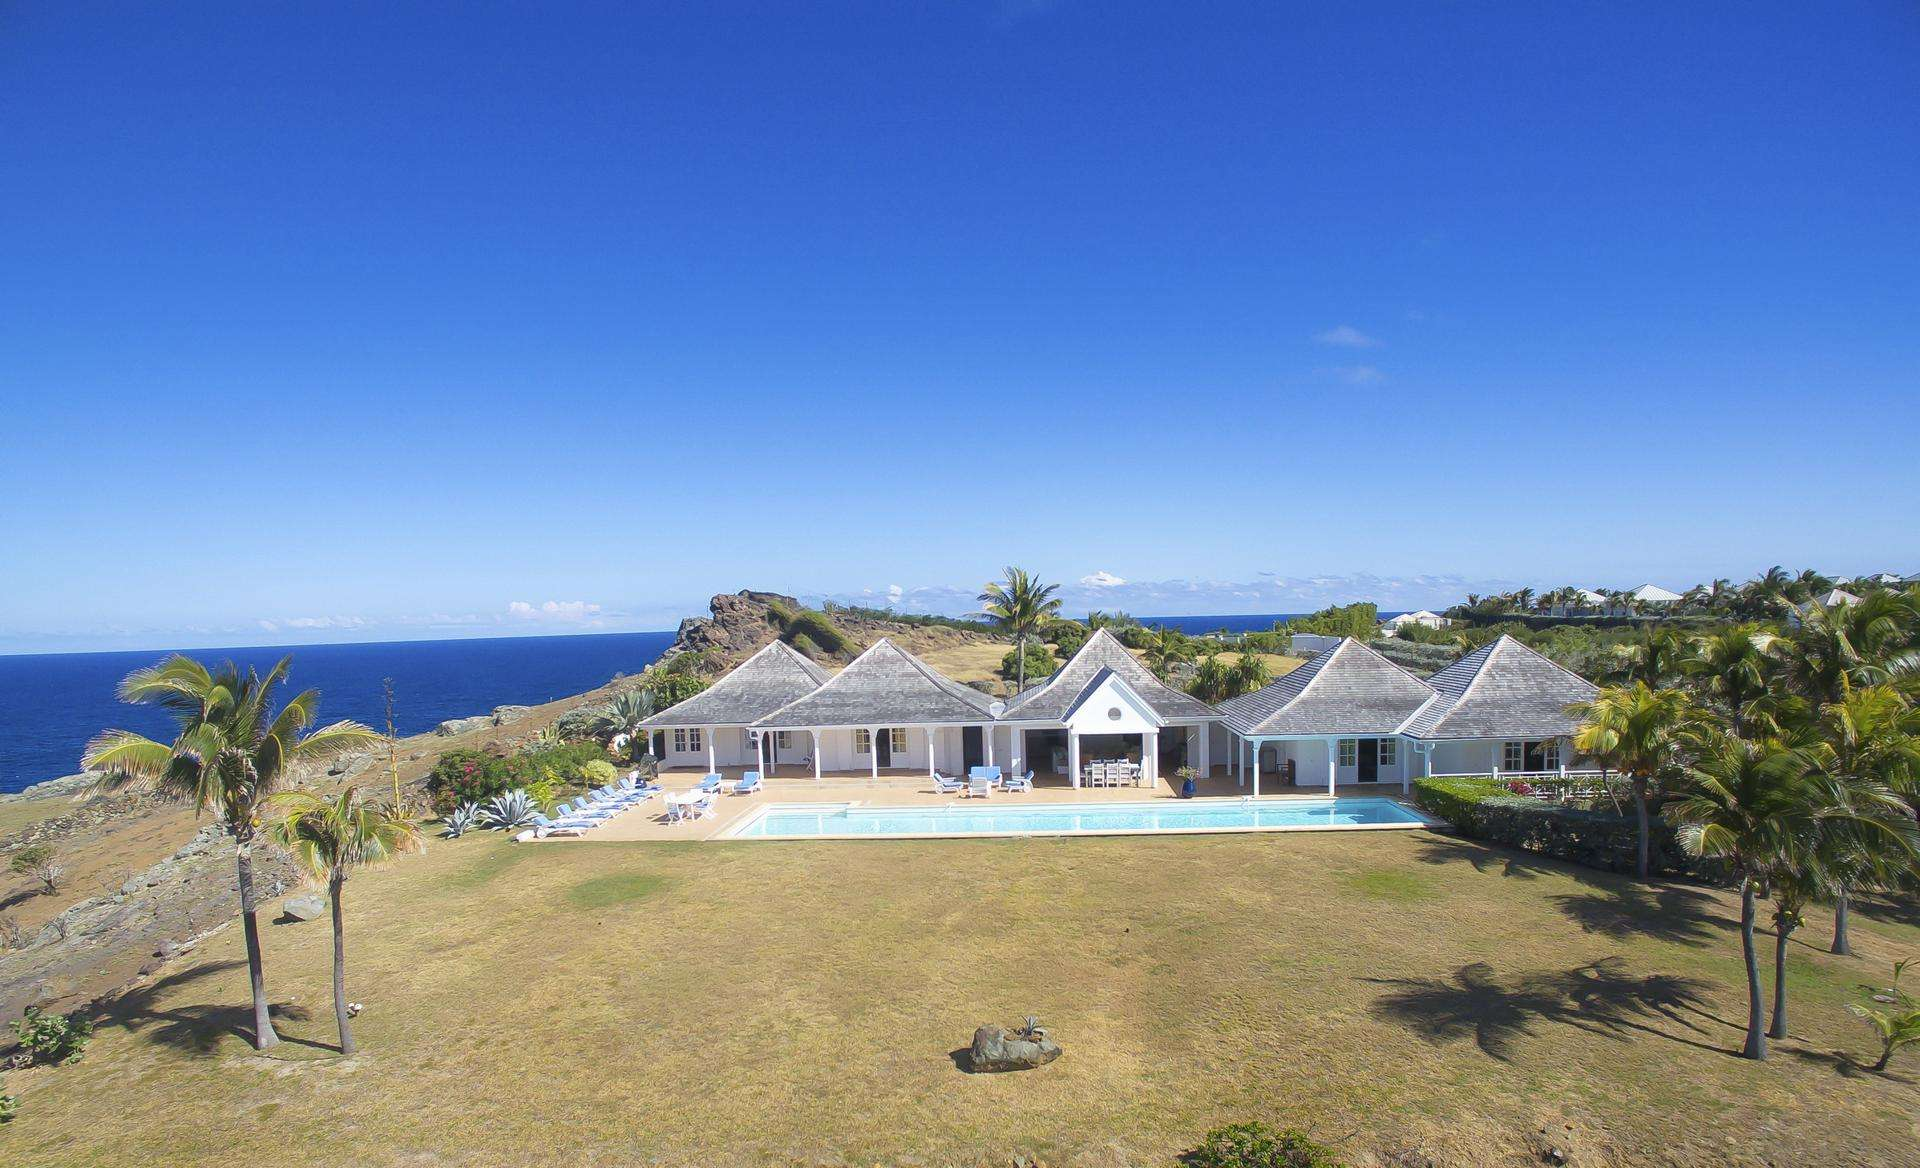 Luxury villa rentals caribbean - St barthelemy - Petit culdesac - Oui - Image 1/21